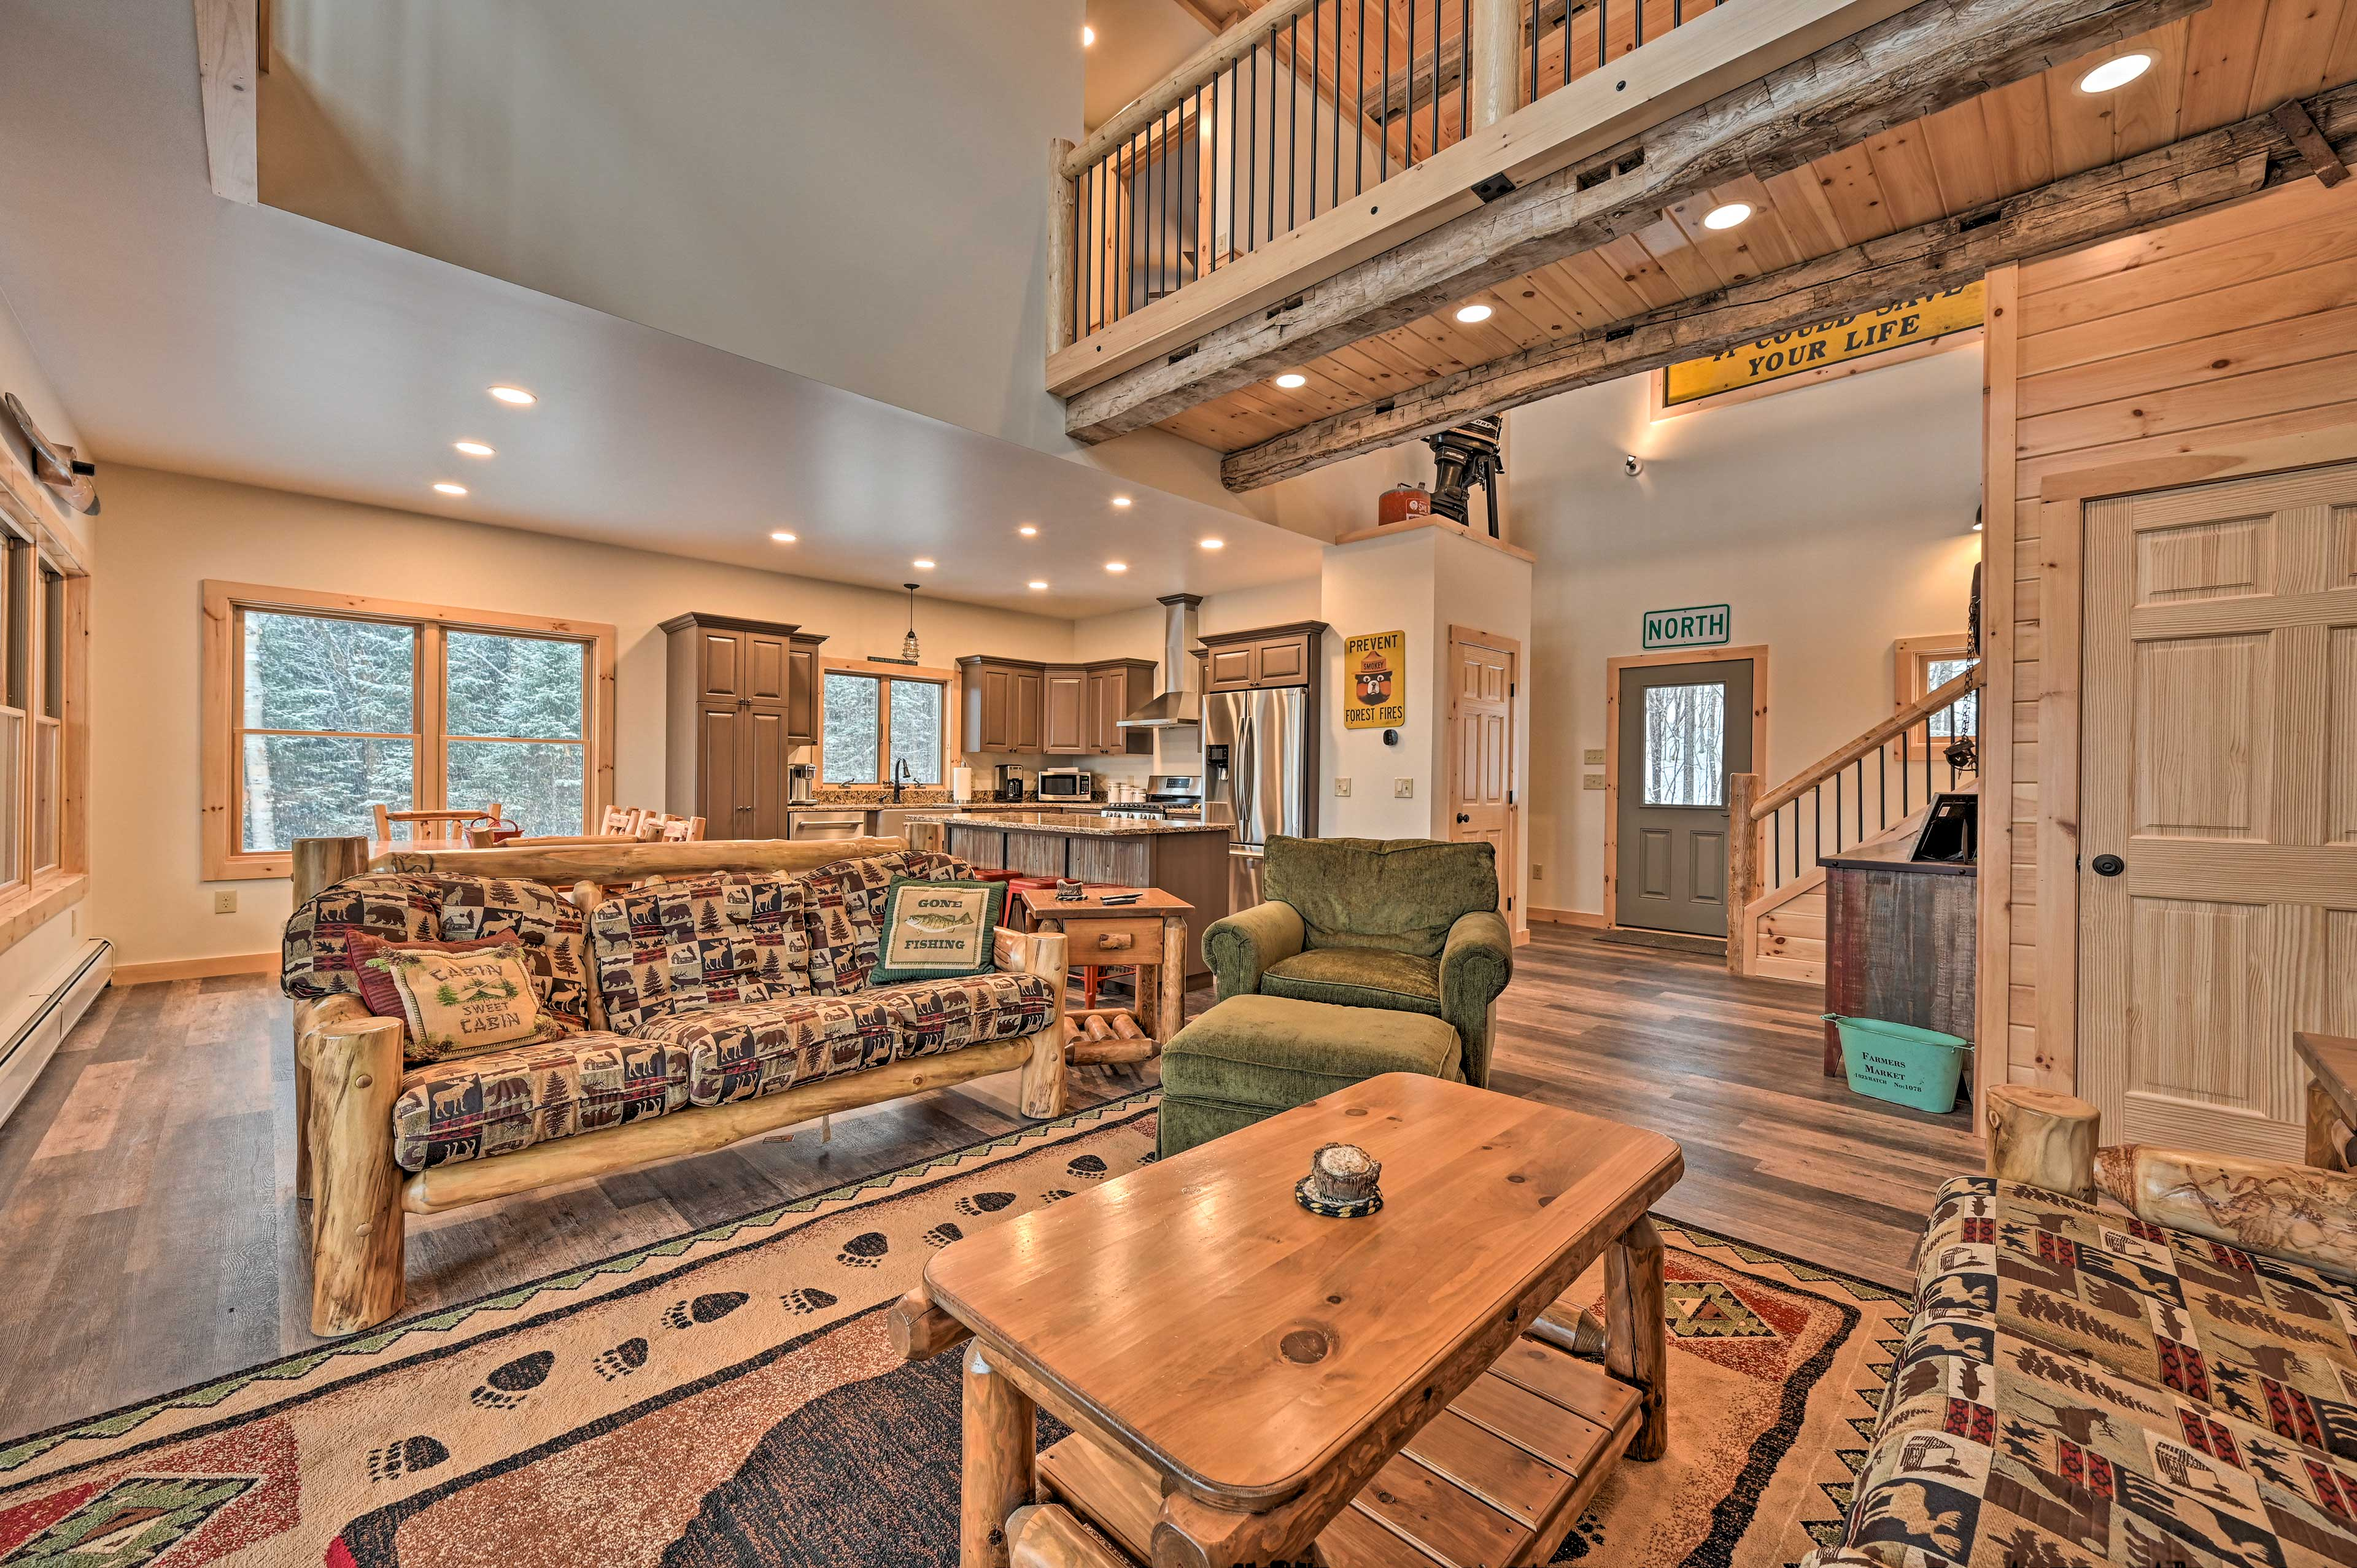 This 4-bedroom, 2.5-bathroom home is perfect for 10 guests.